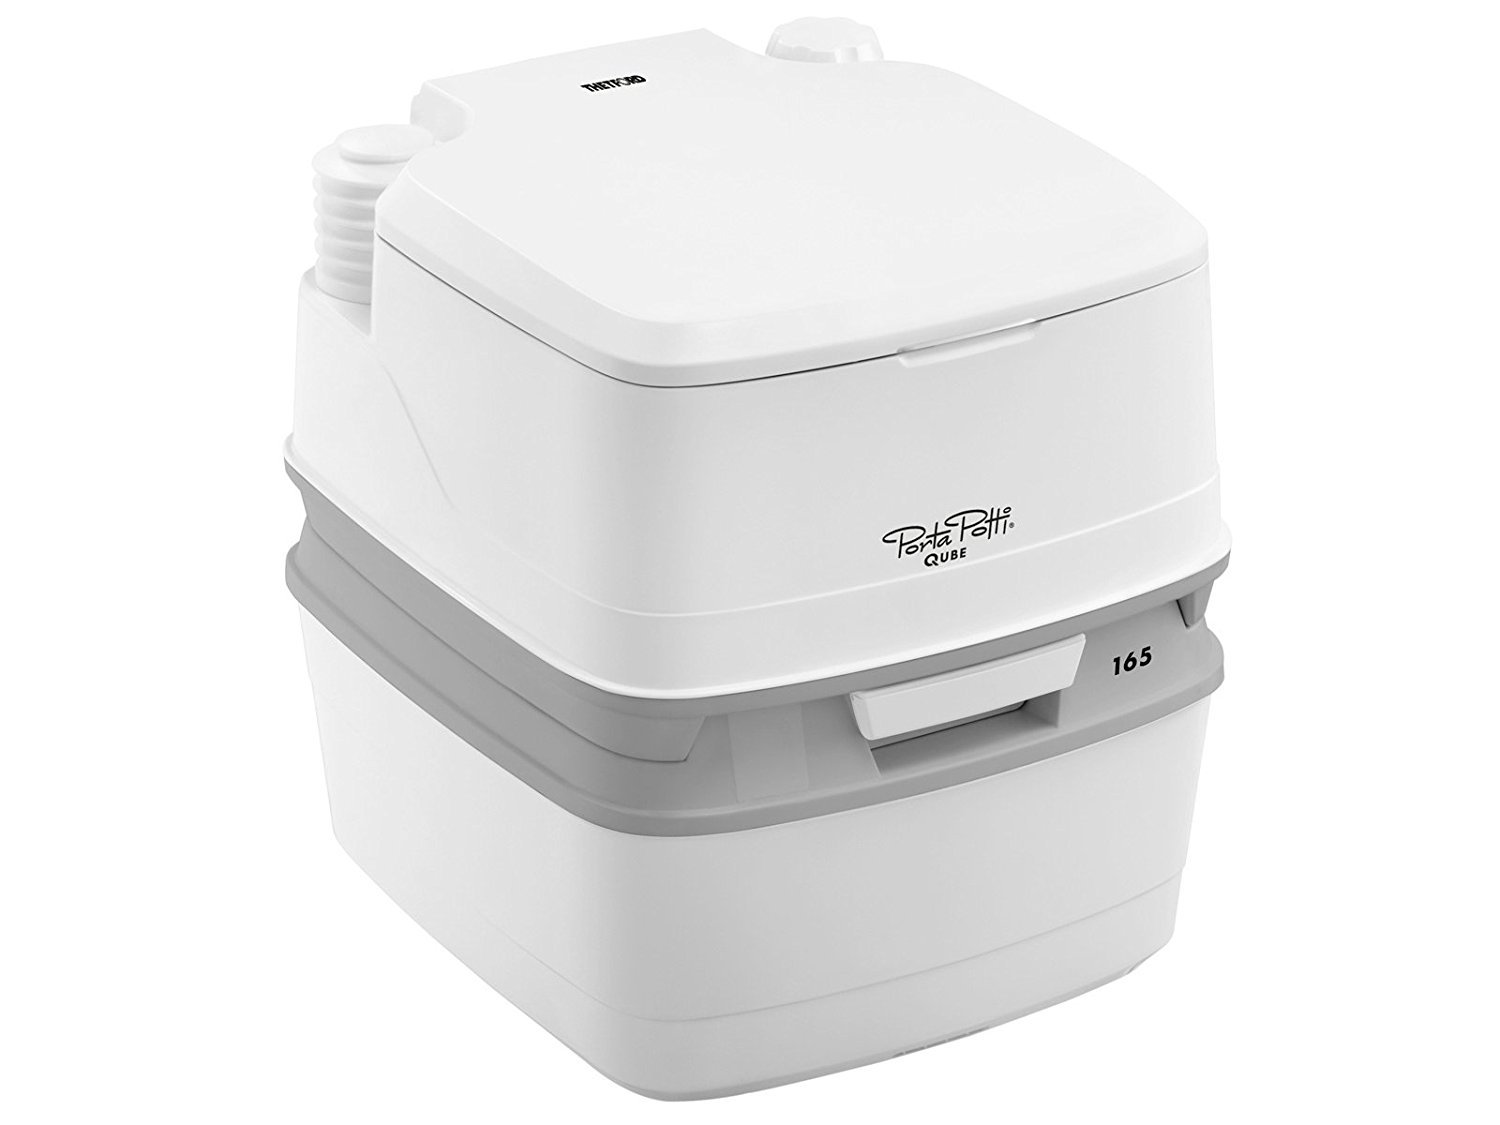 Portable Boat Toilet : West marine runabout portable toilet rv boat camp prep bugout